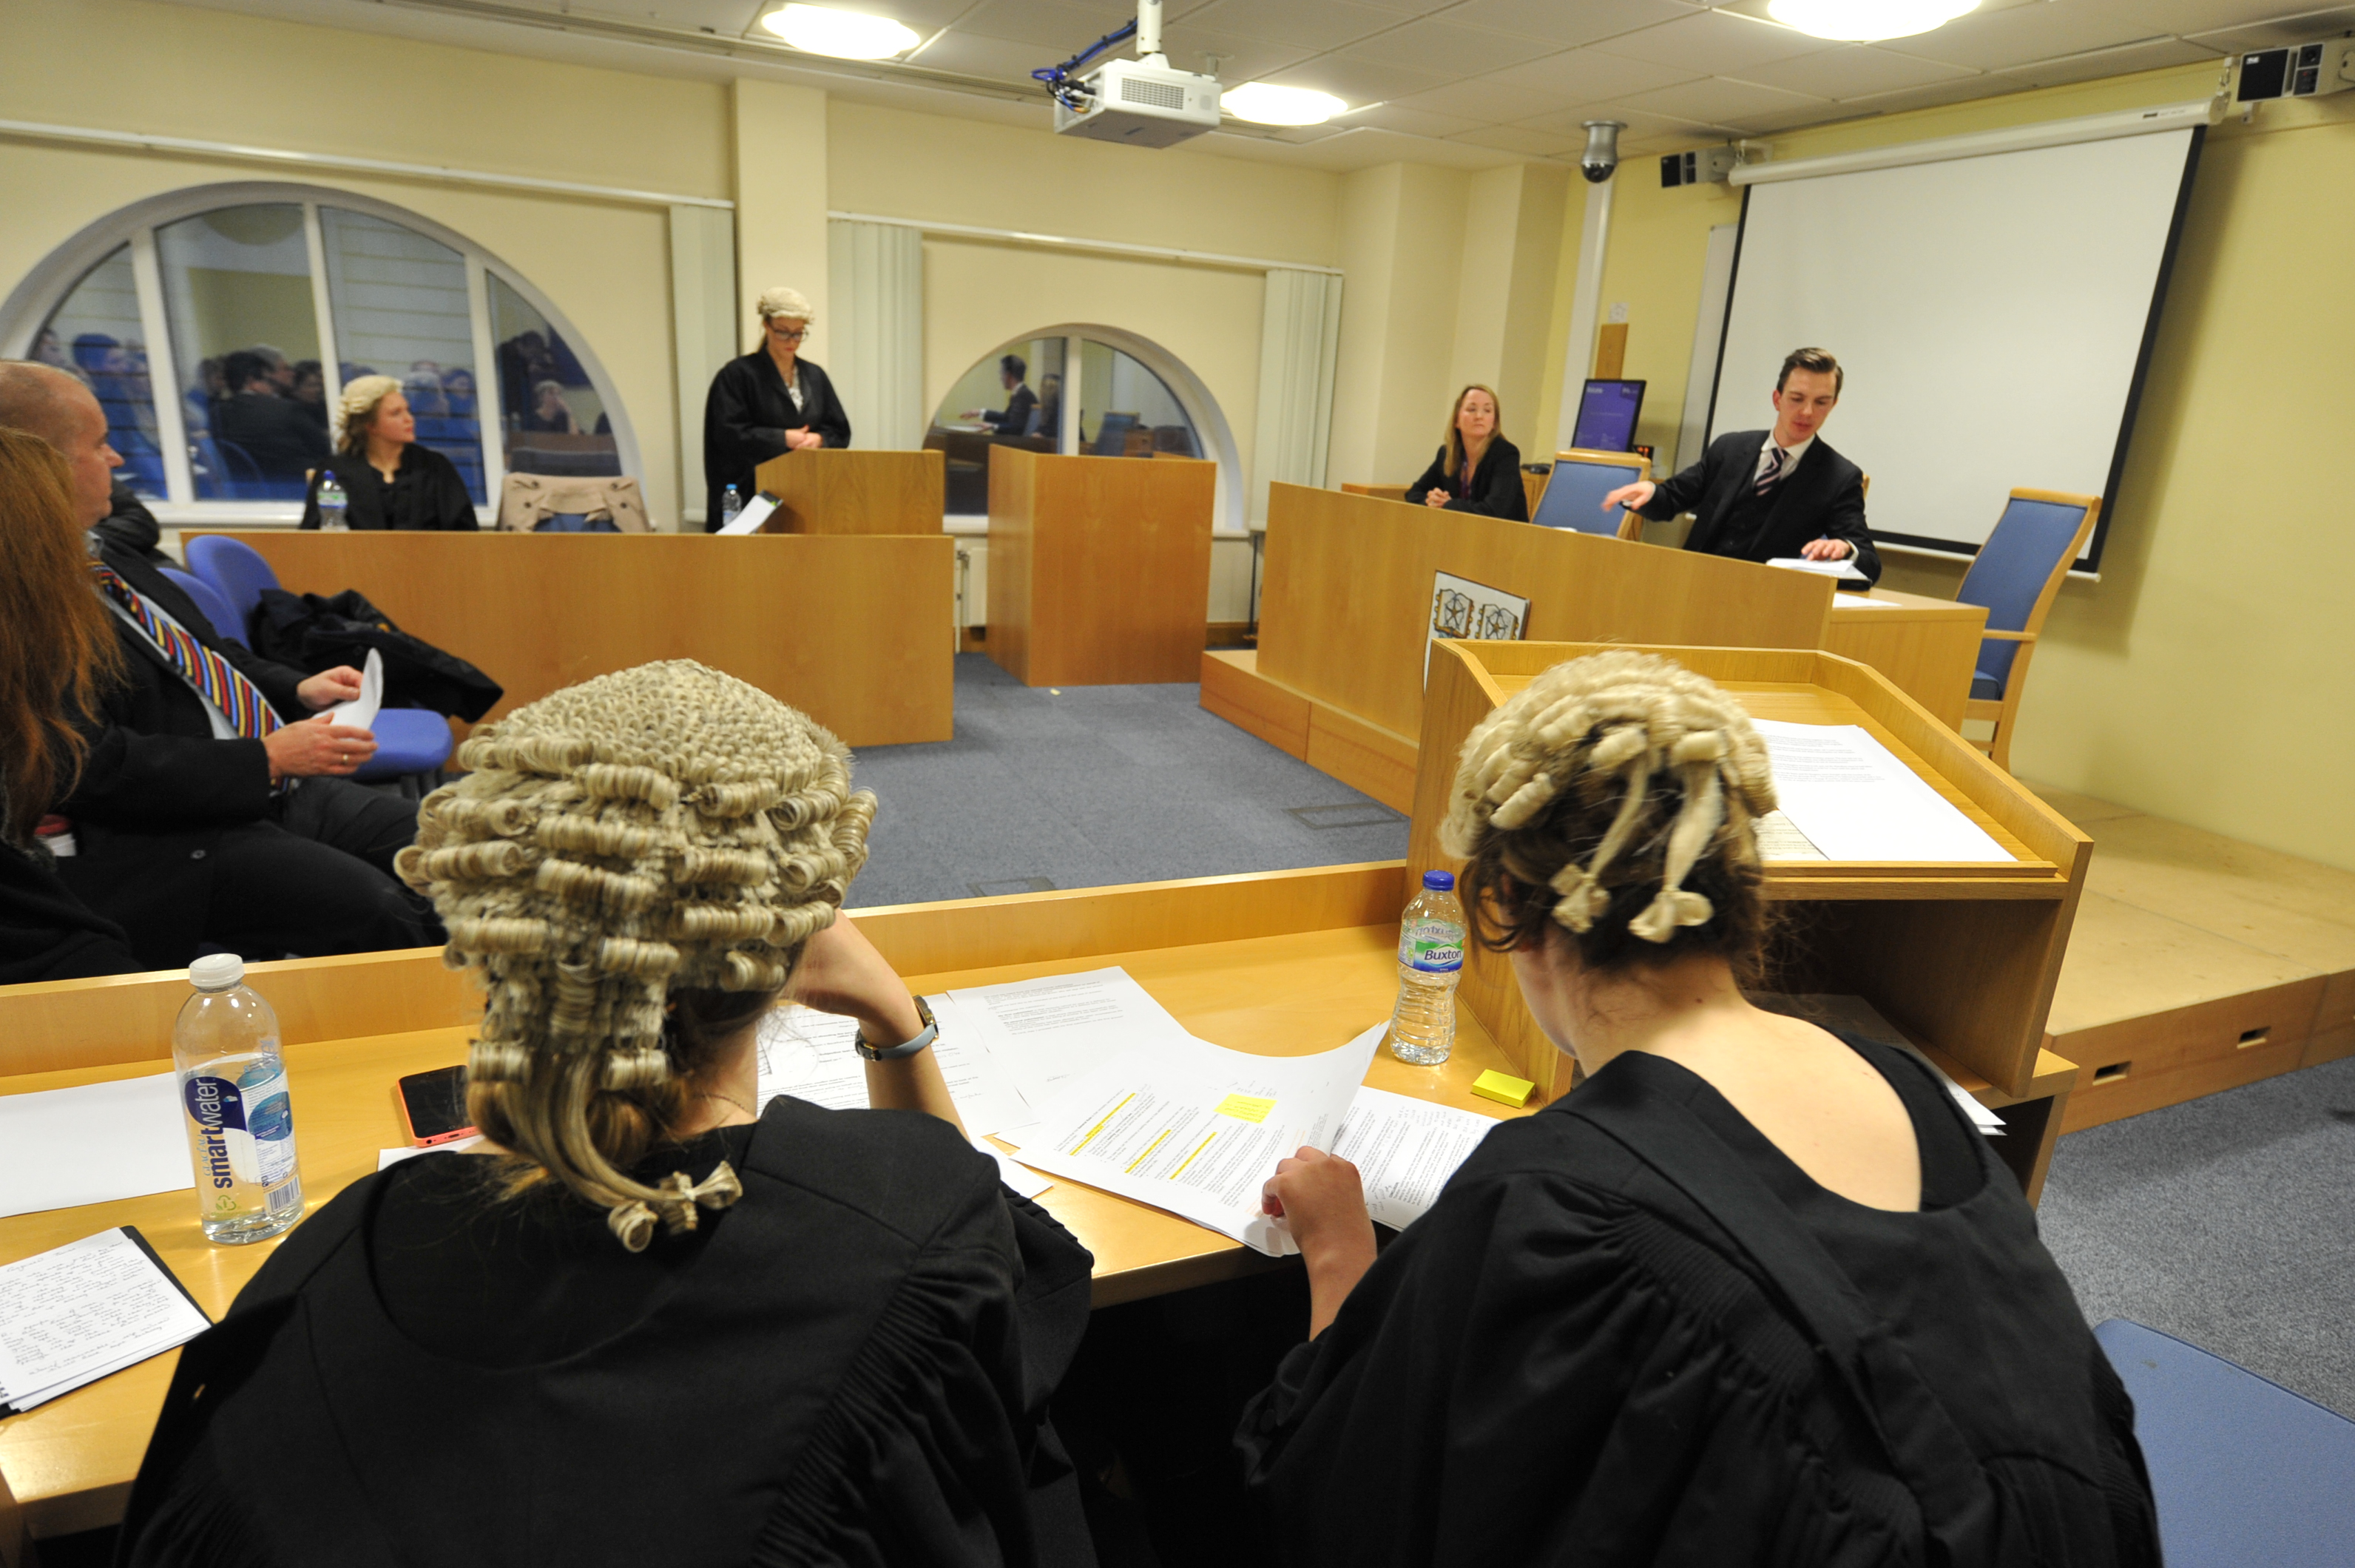 MP and Judge join Leeds Law School as Visiting Fellows